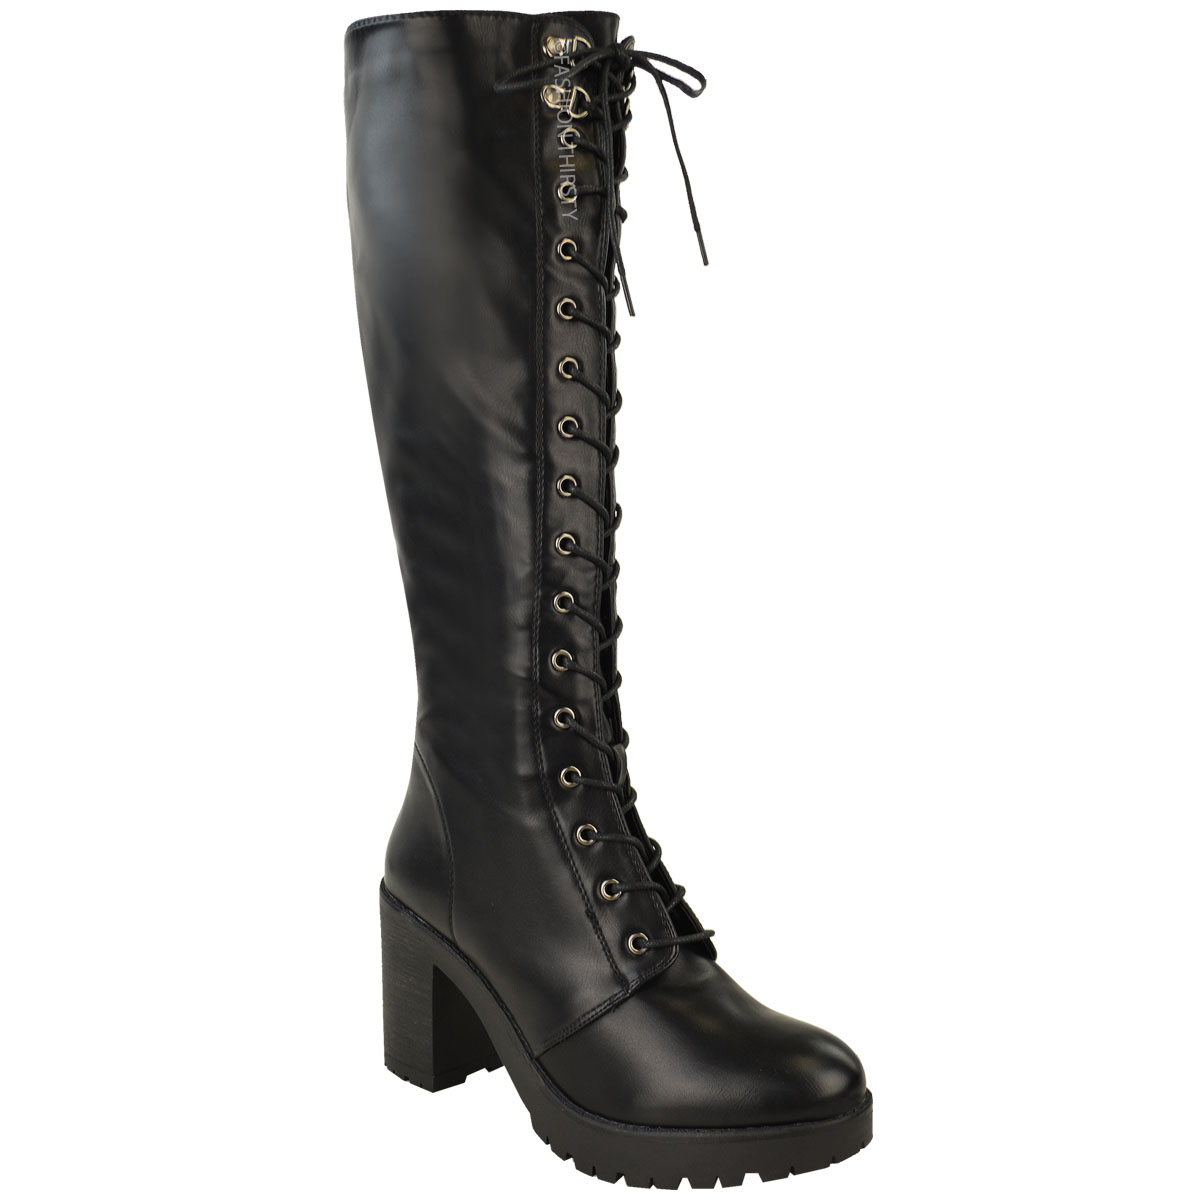 Find great deals on eBay for womens knee high biker boots. Shop with confidence.